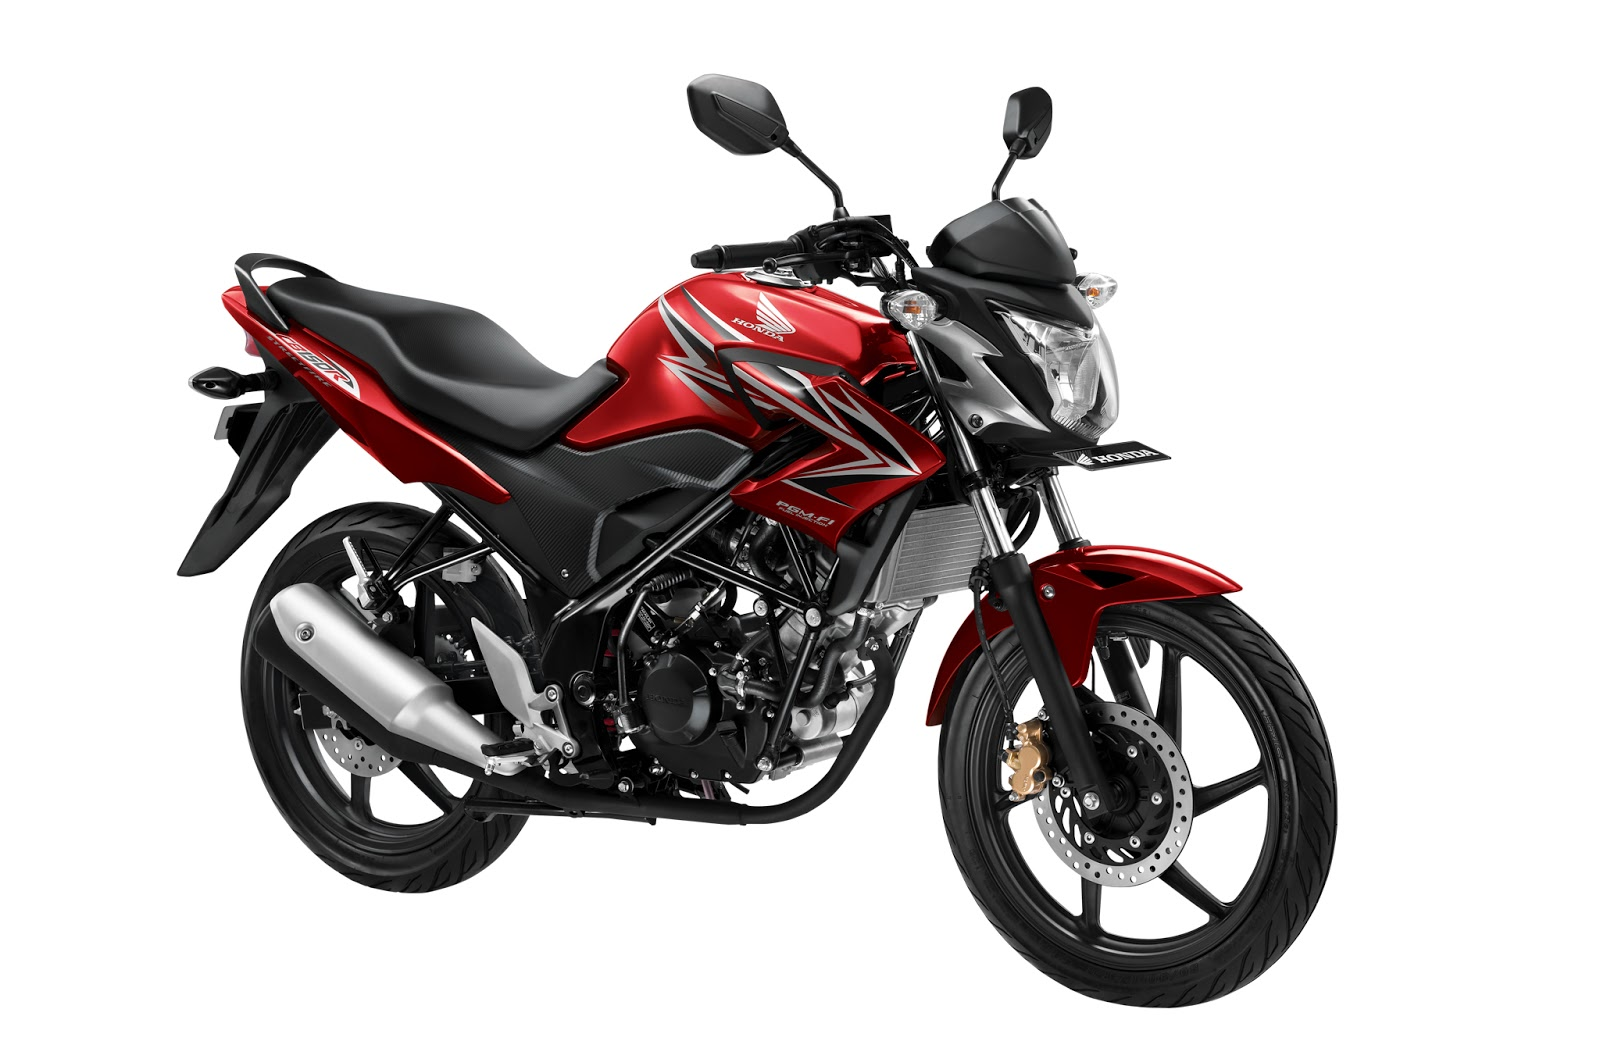 Honda CBR 150 R 2013 | Motorcycle and Car News The Latest